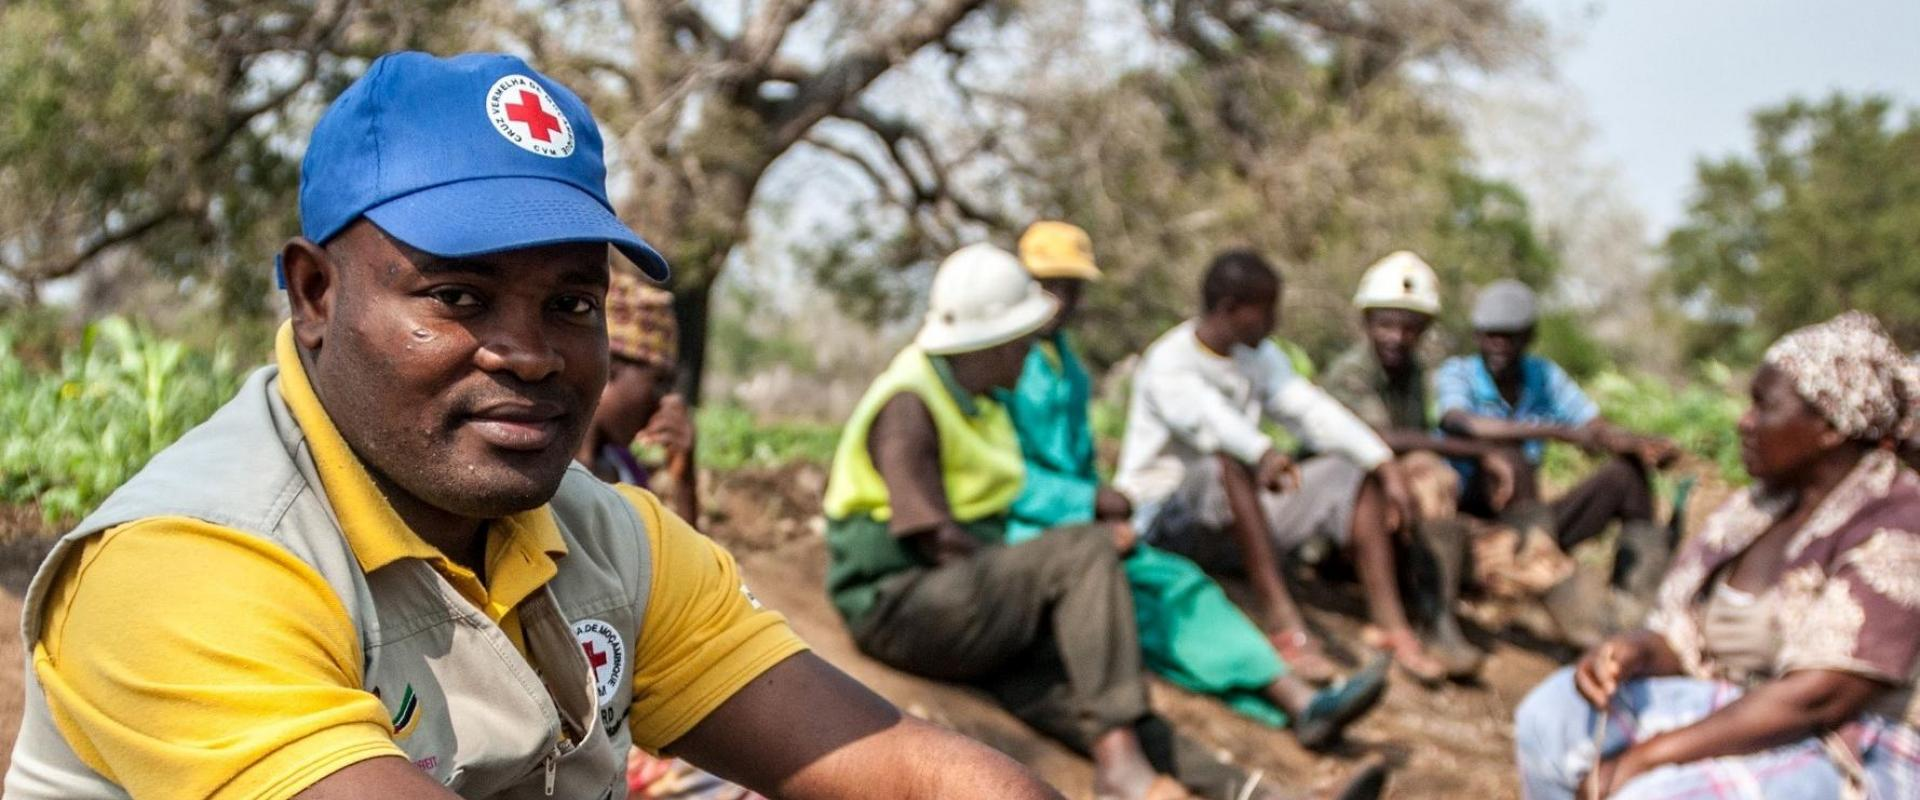 EU Aid Volunteer Social Media/Communication Mozambique